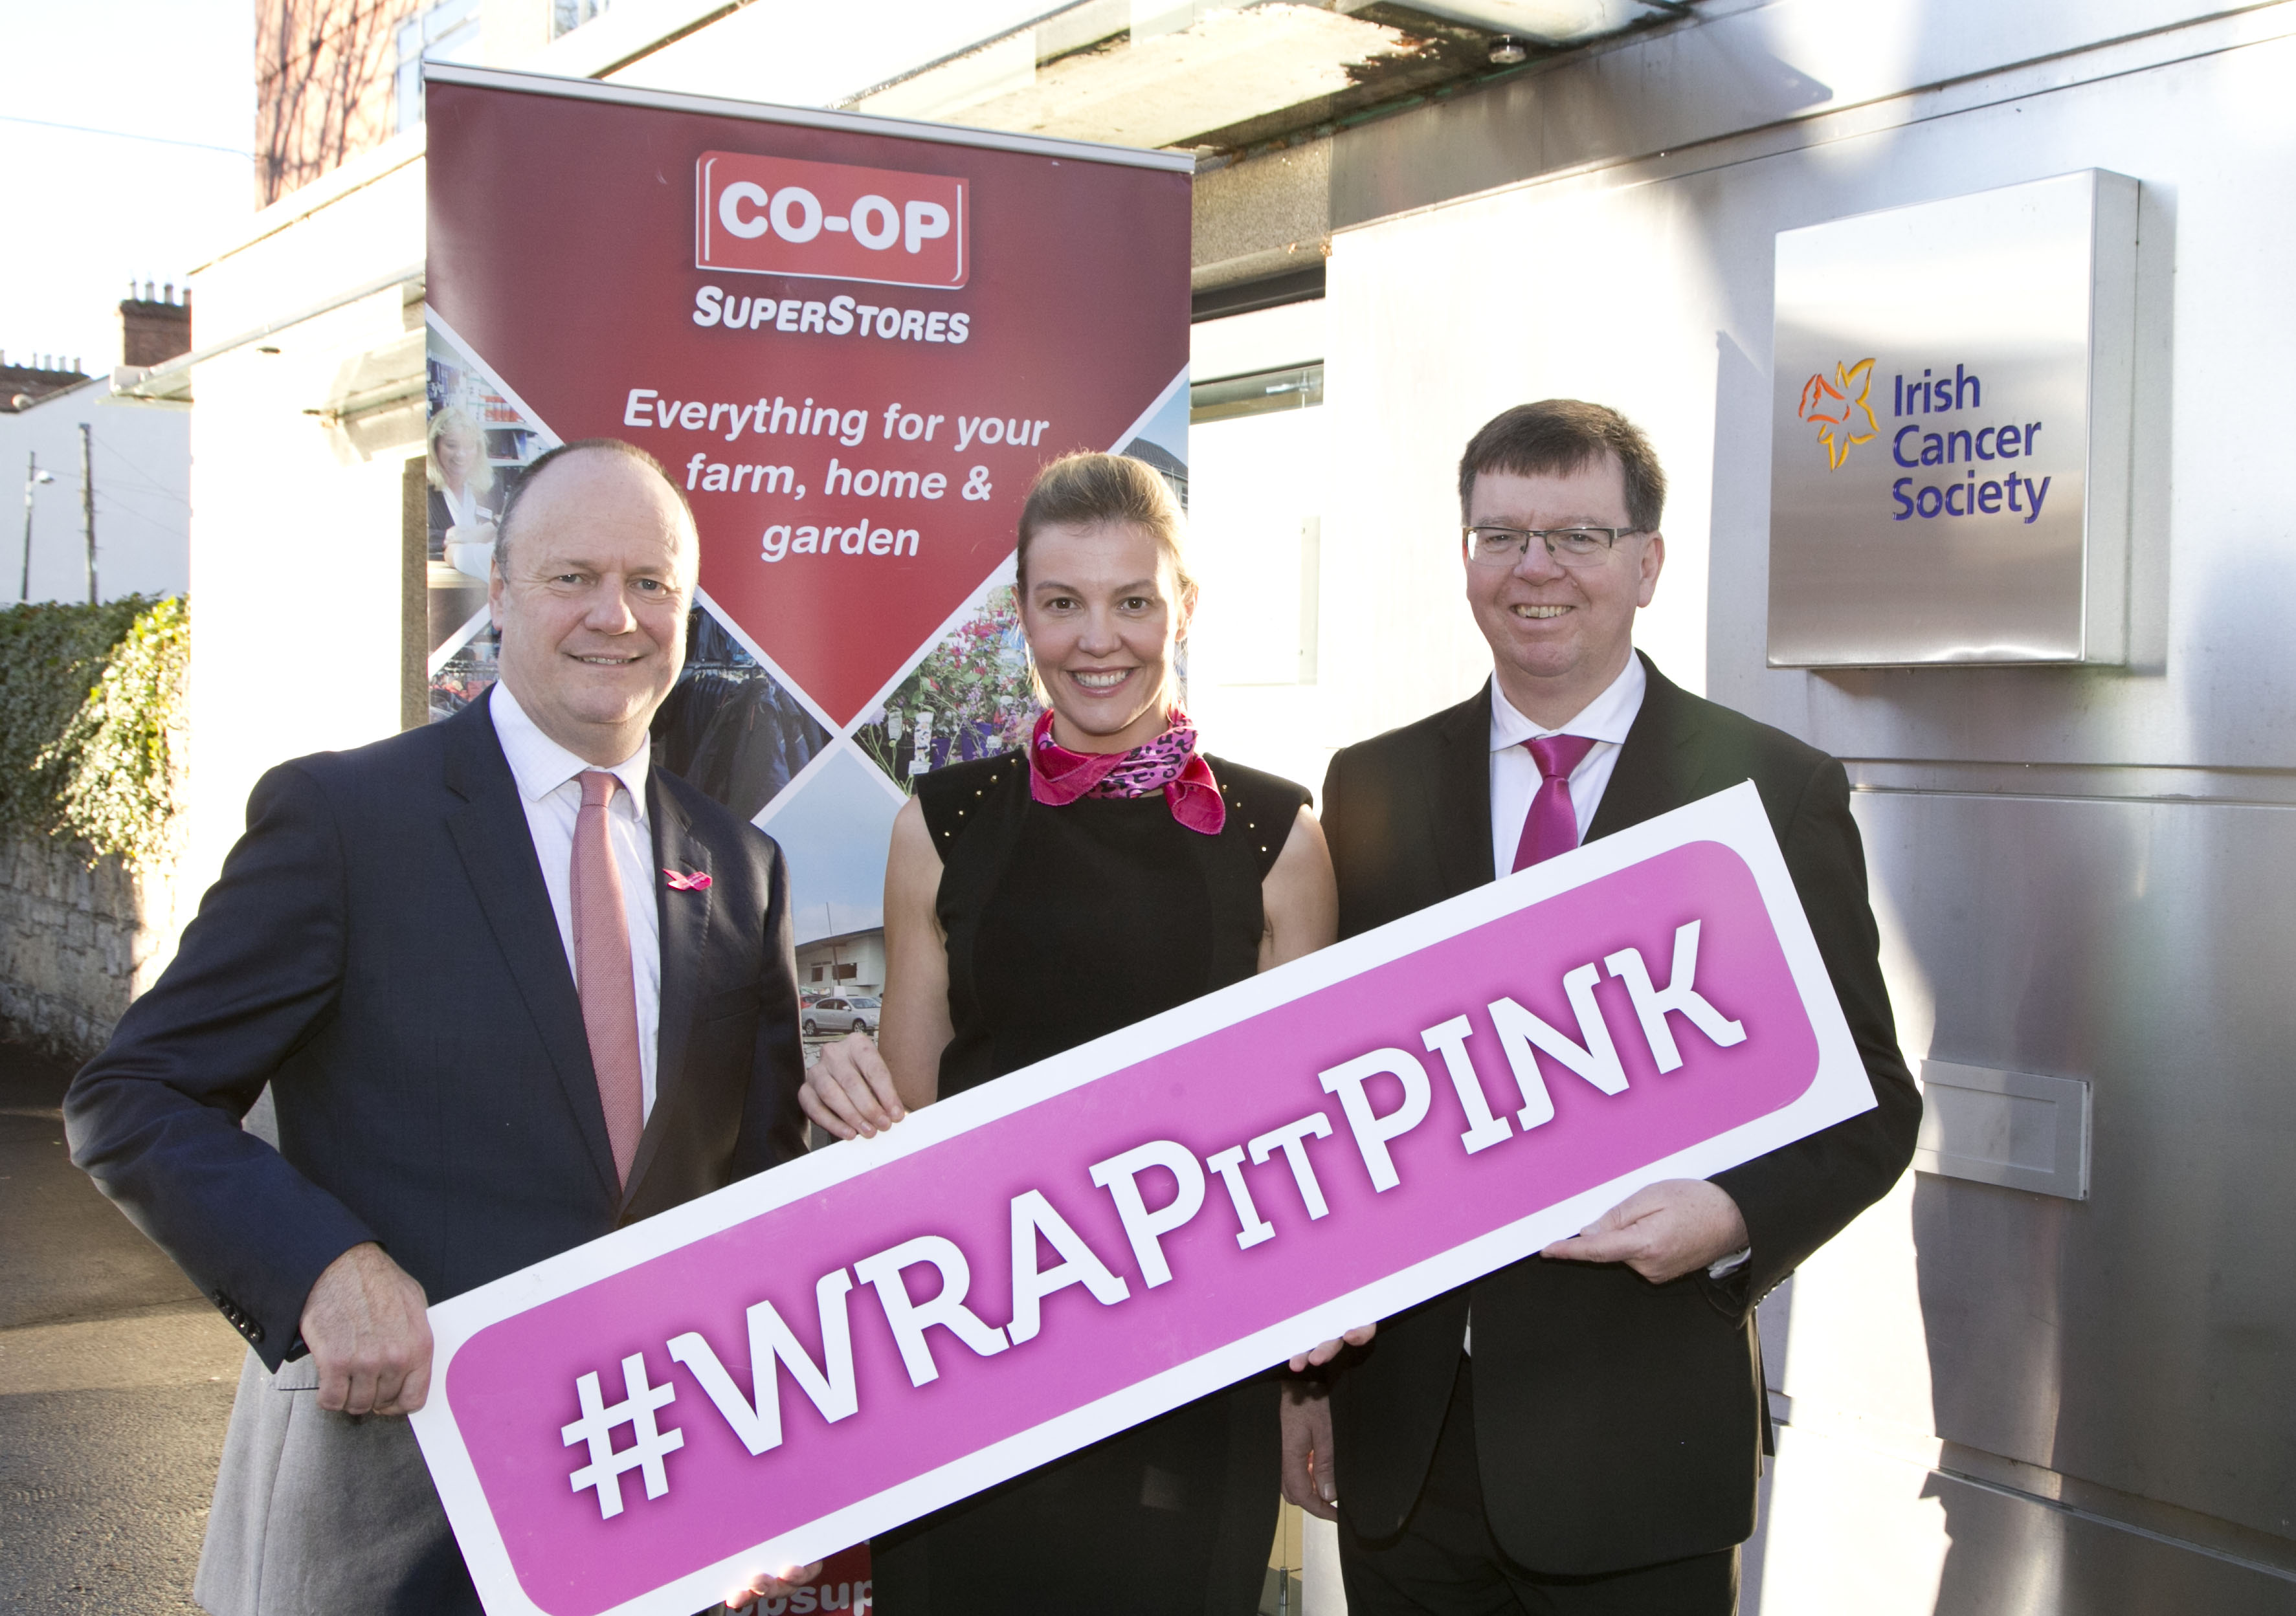 """Dairygold's """"Wrap It Pink"""" campaign raises €17,500 for the Irish Cancer Society"""